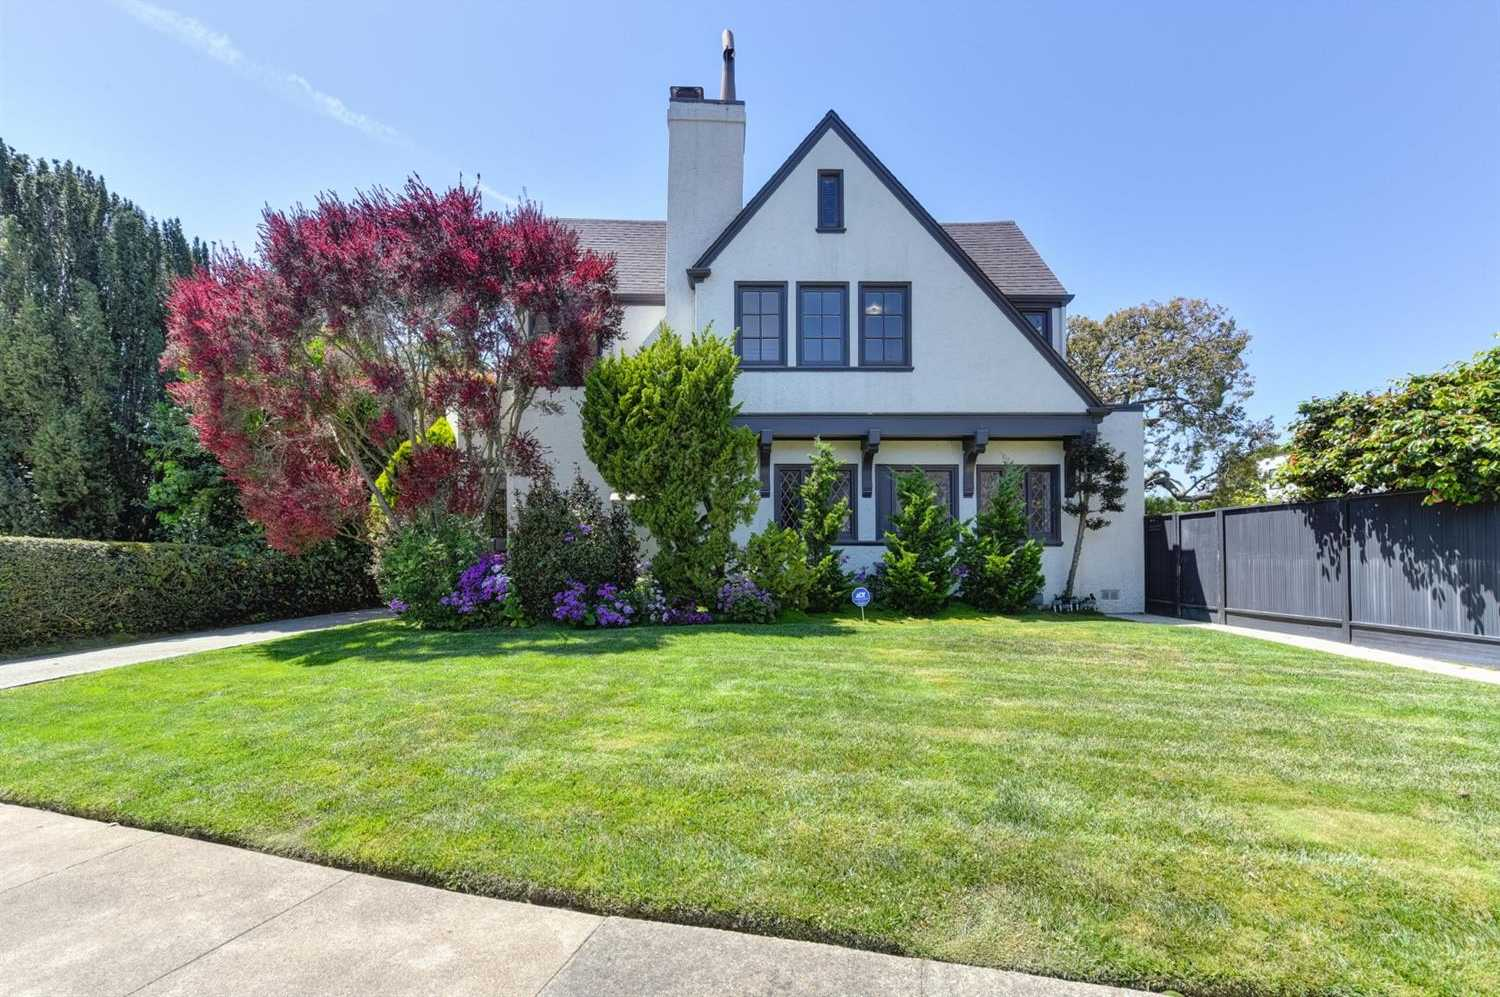 $3,850,000 - 3Br/3Ba -  for Sale in San Francisco